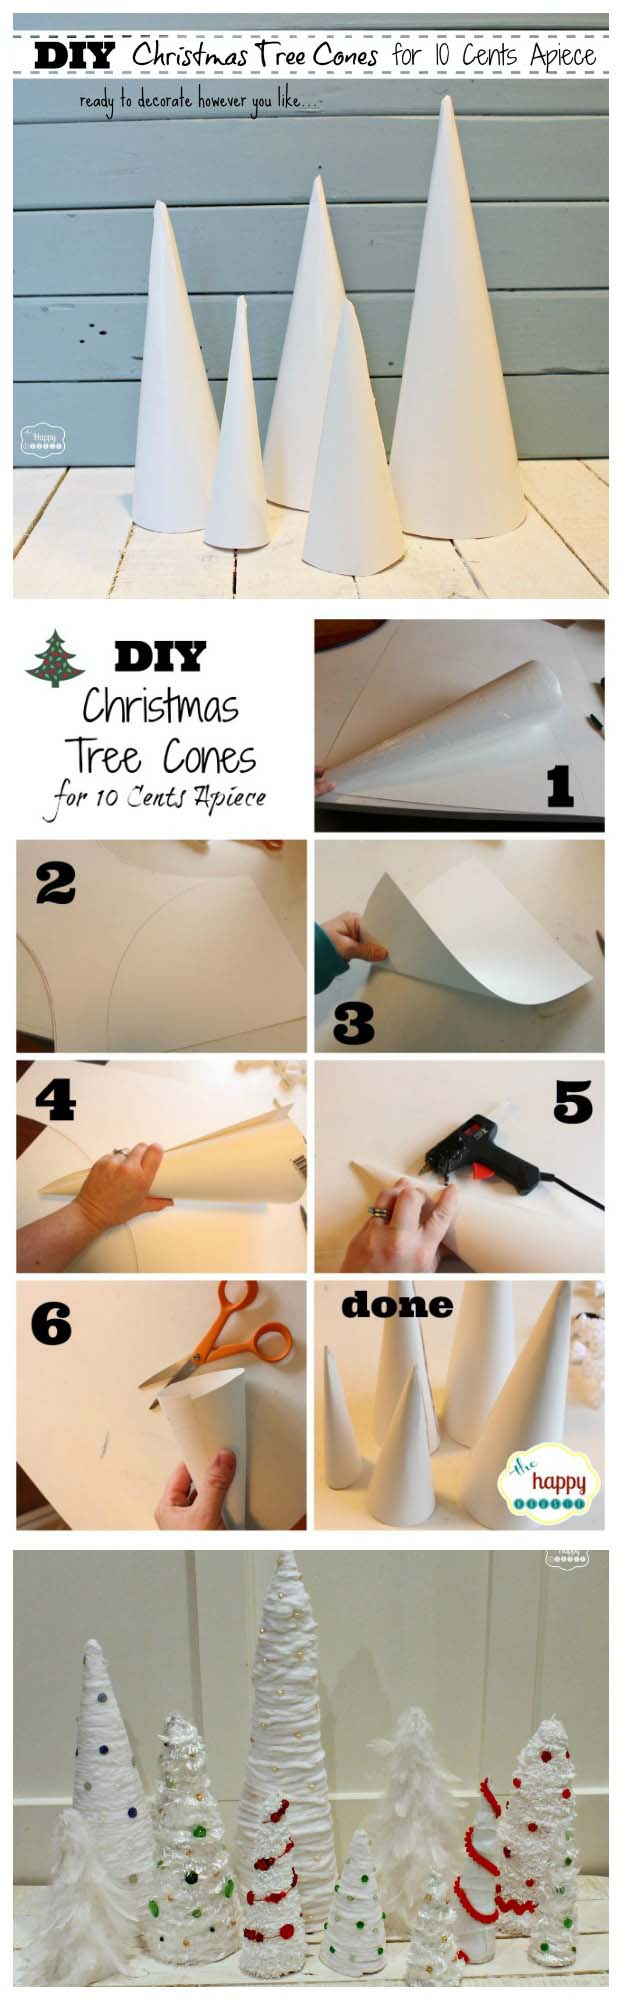 10 Cents a Piece Christmas Tree Cone Craft #Christmas #tree #crafts #decorhomeideas